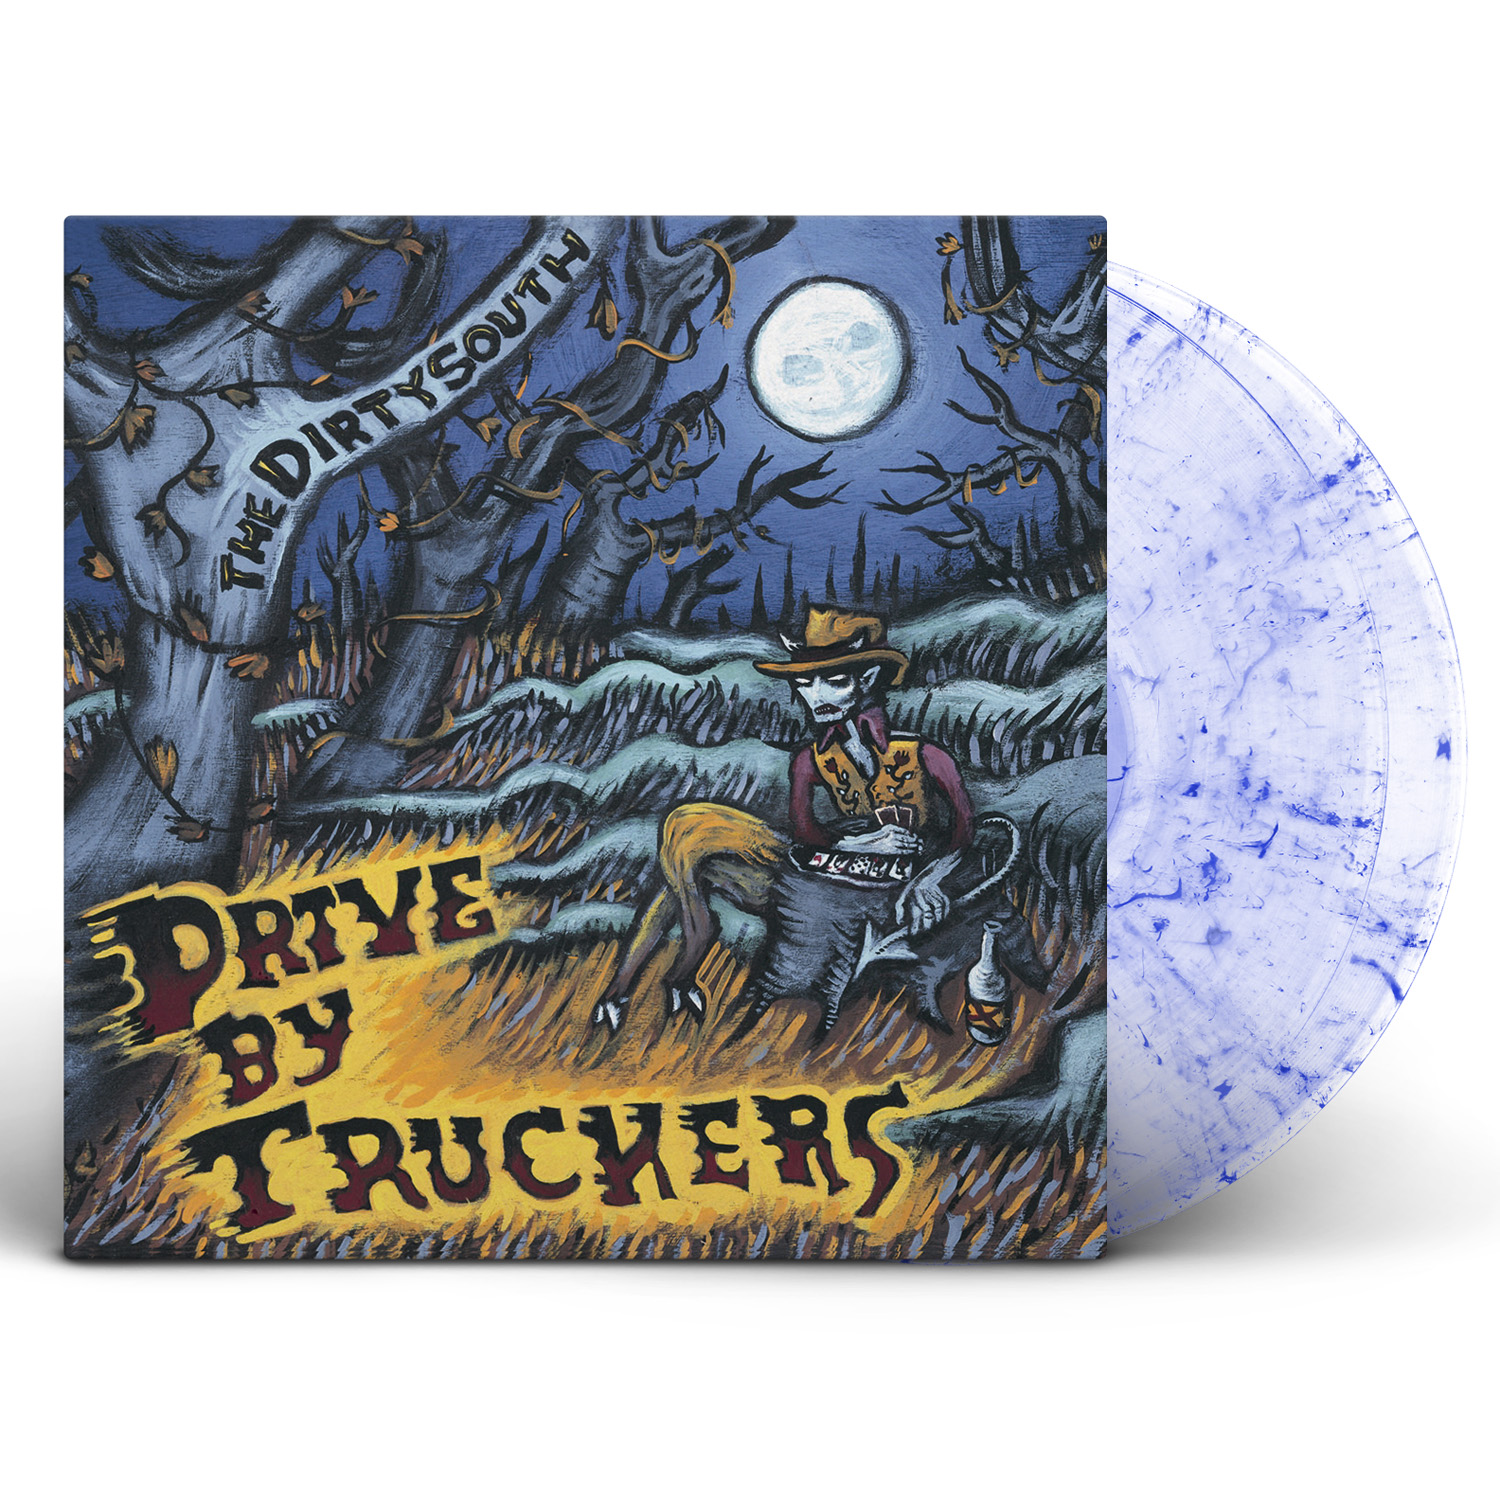 cup daddys Drive truckers by